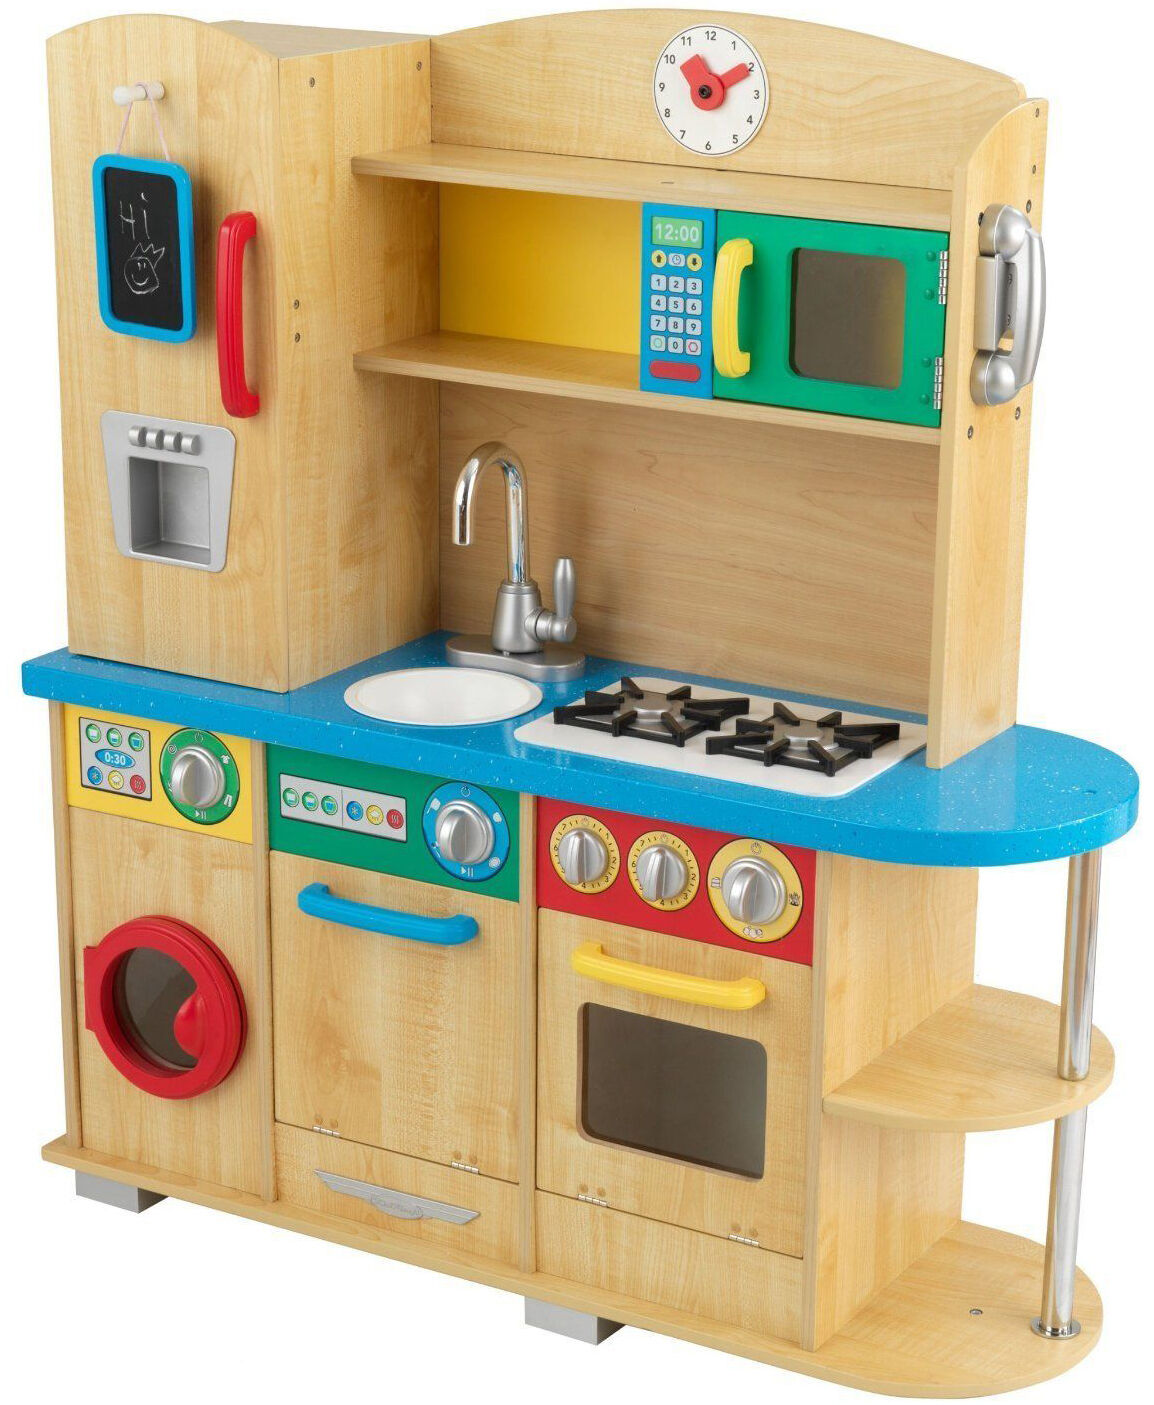 Top 10 wooden kitchens for kids ebay for Toddler kitchen set